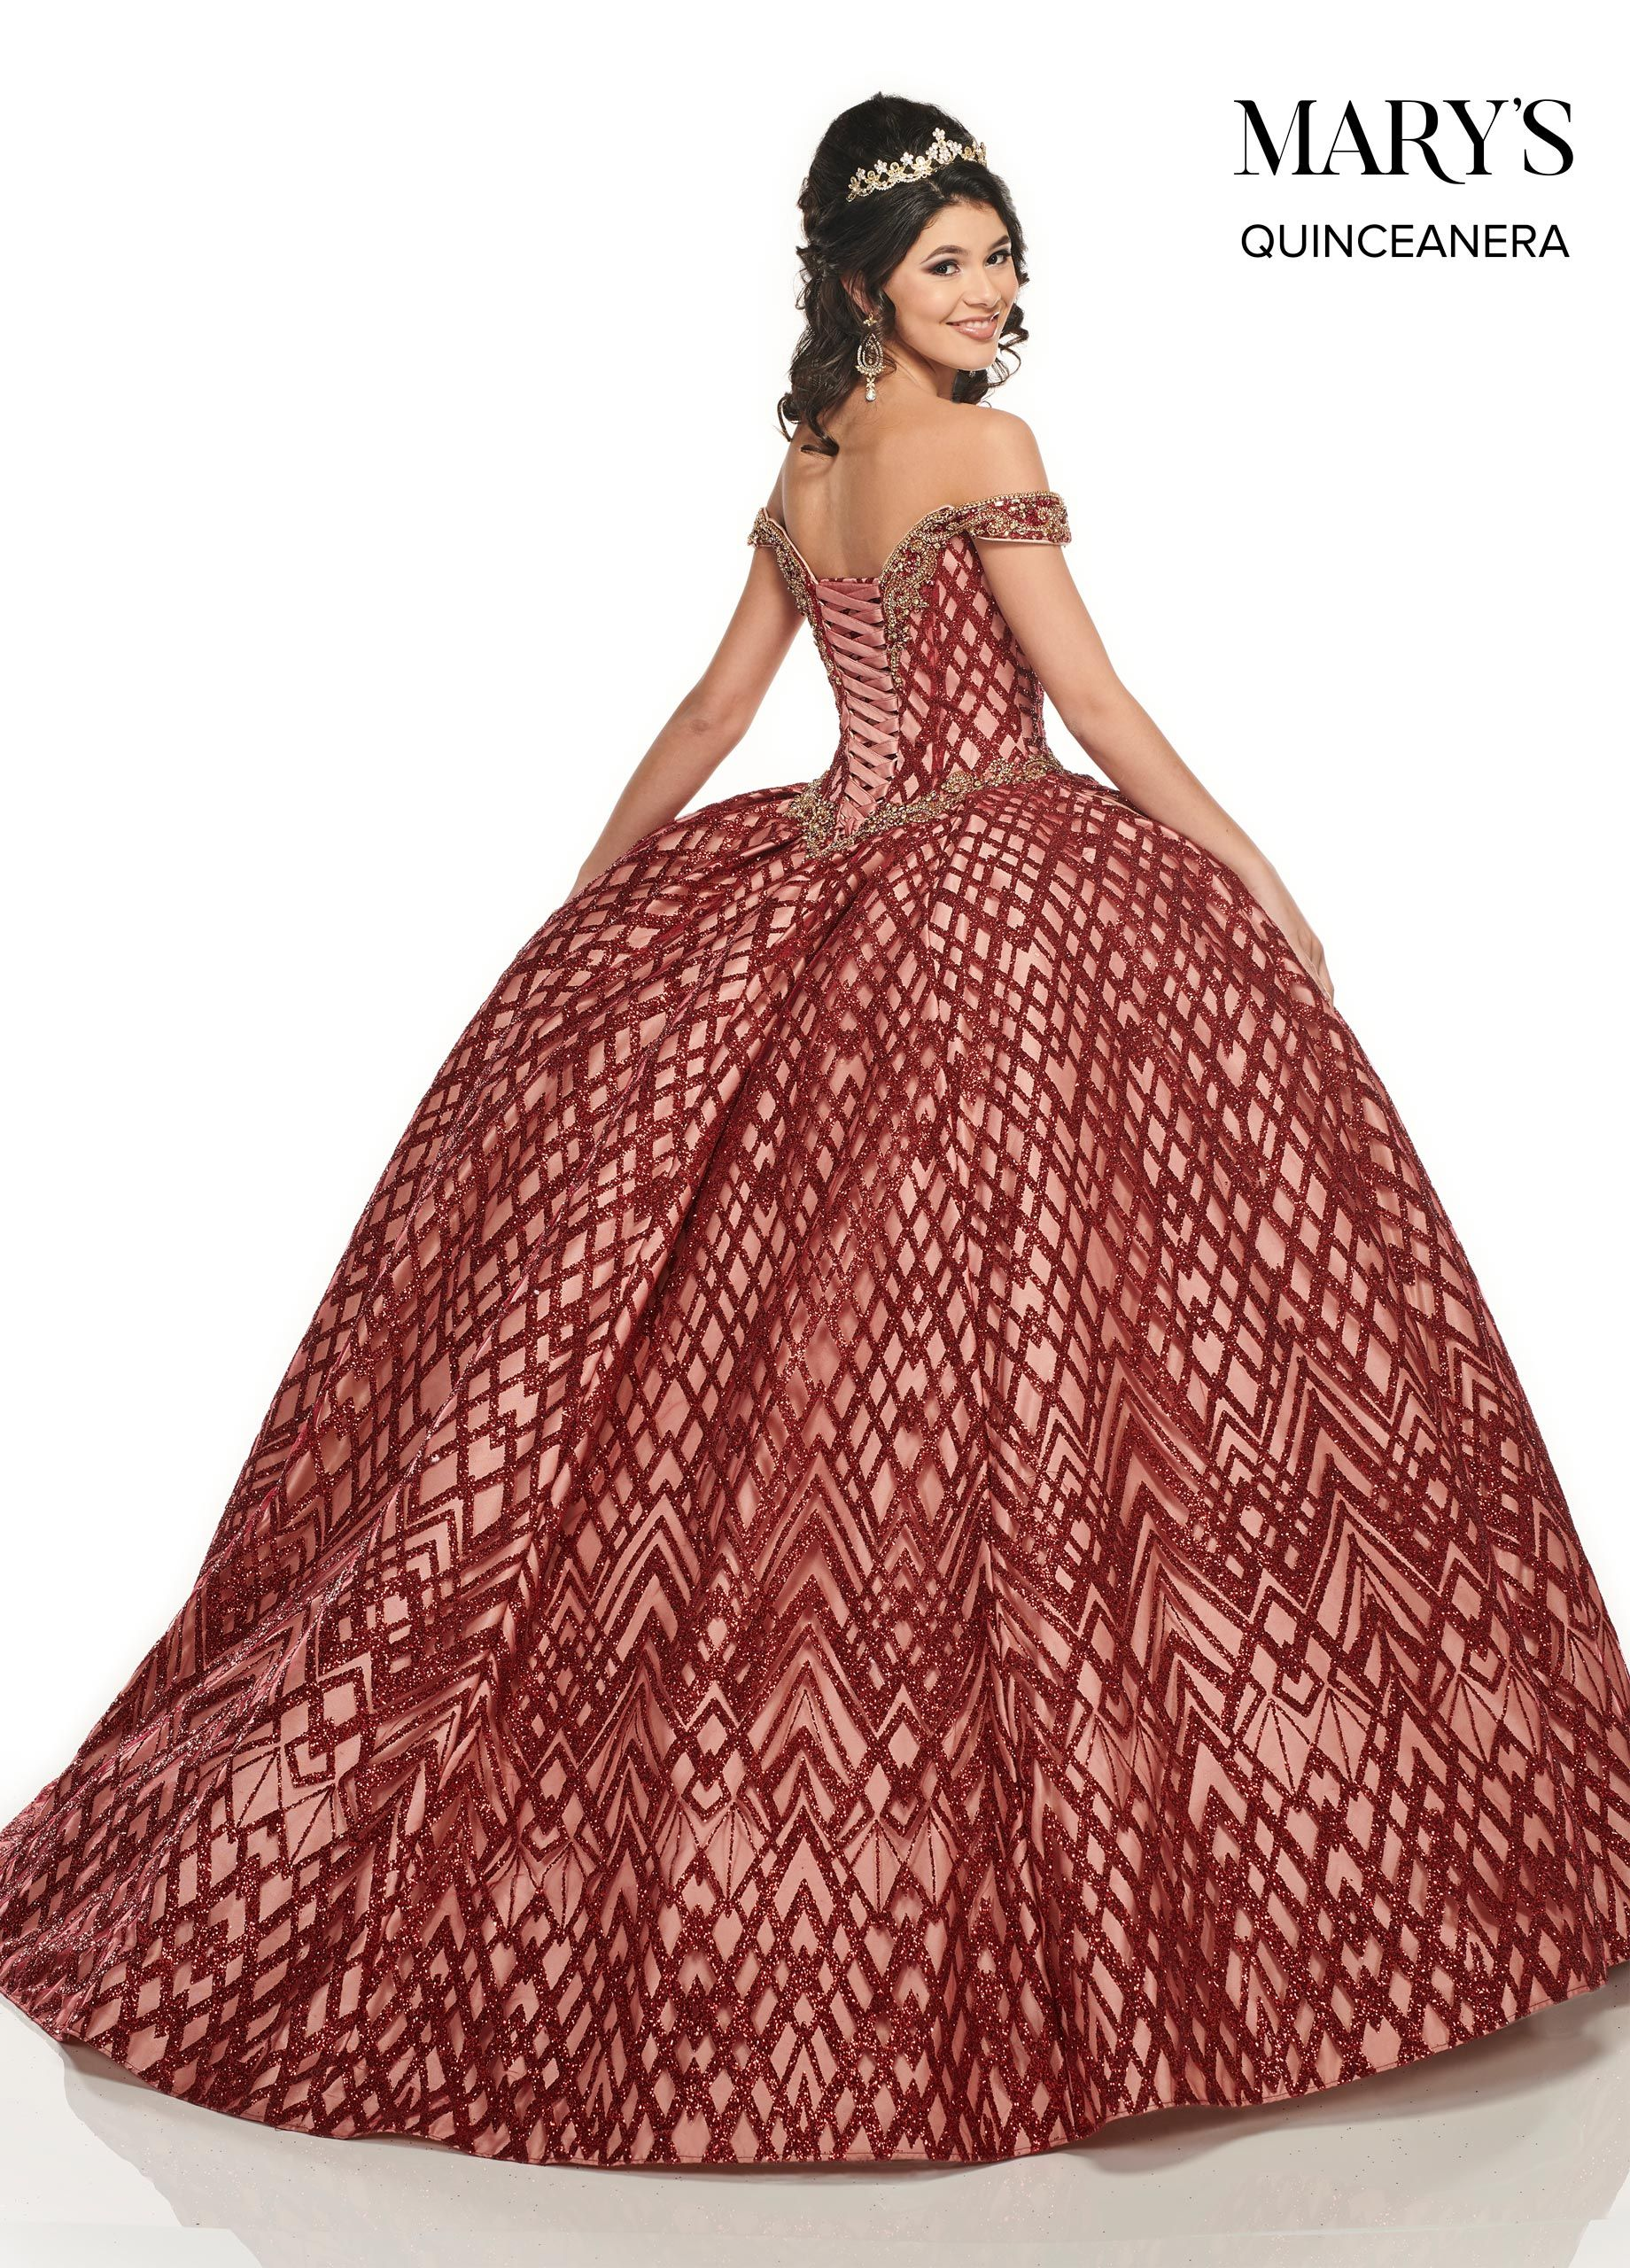 Off The Shoulder Glitter Quinceanera Dress By Mary S Bridal Mq2088 In 2021 Ball Gowns Quinceanera Dresses Perfect Prom Dress [ 2560 x 1840 Pixel ]